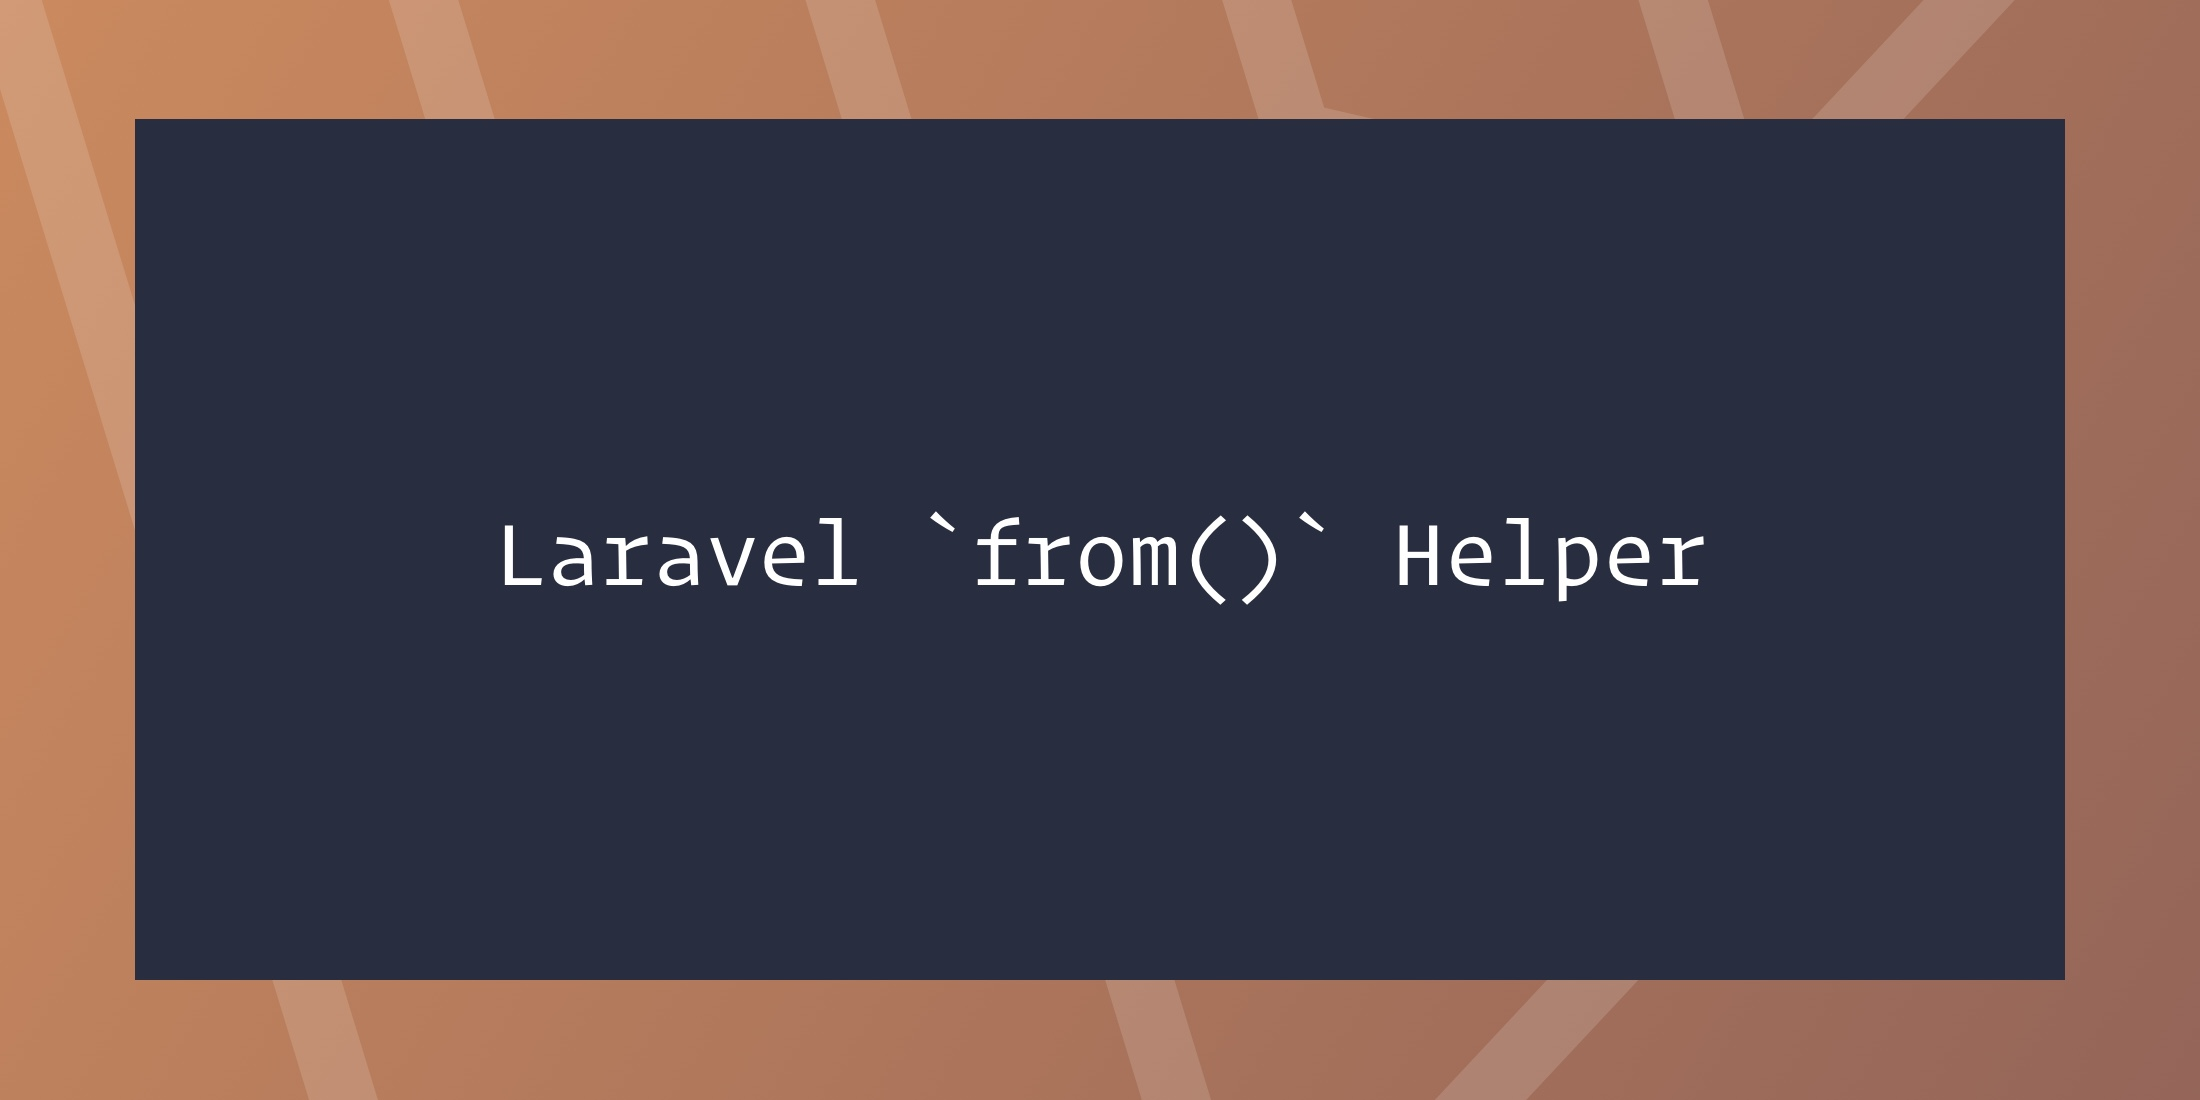 laravel-from-helper.jpg